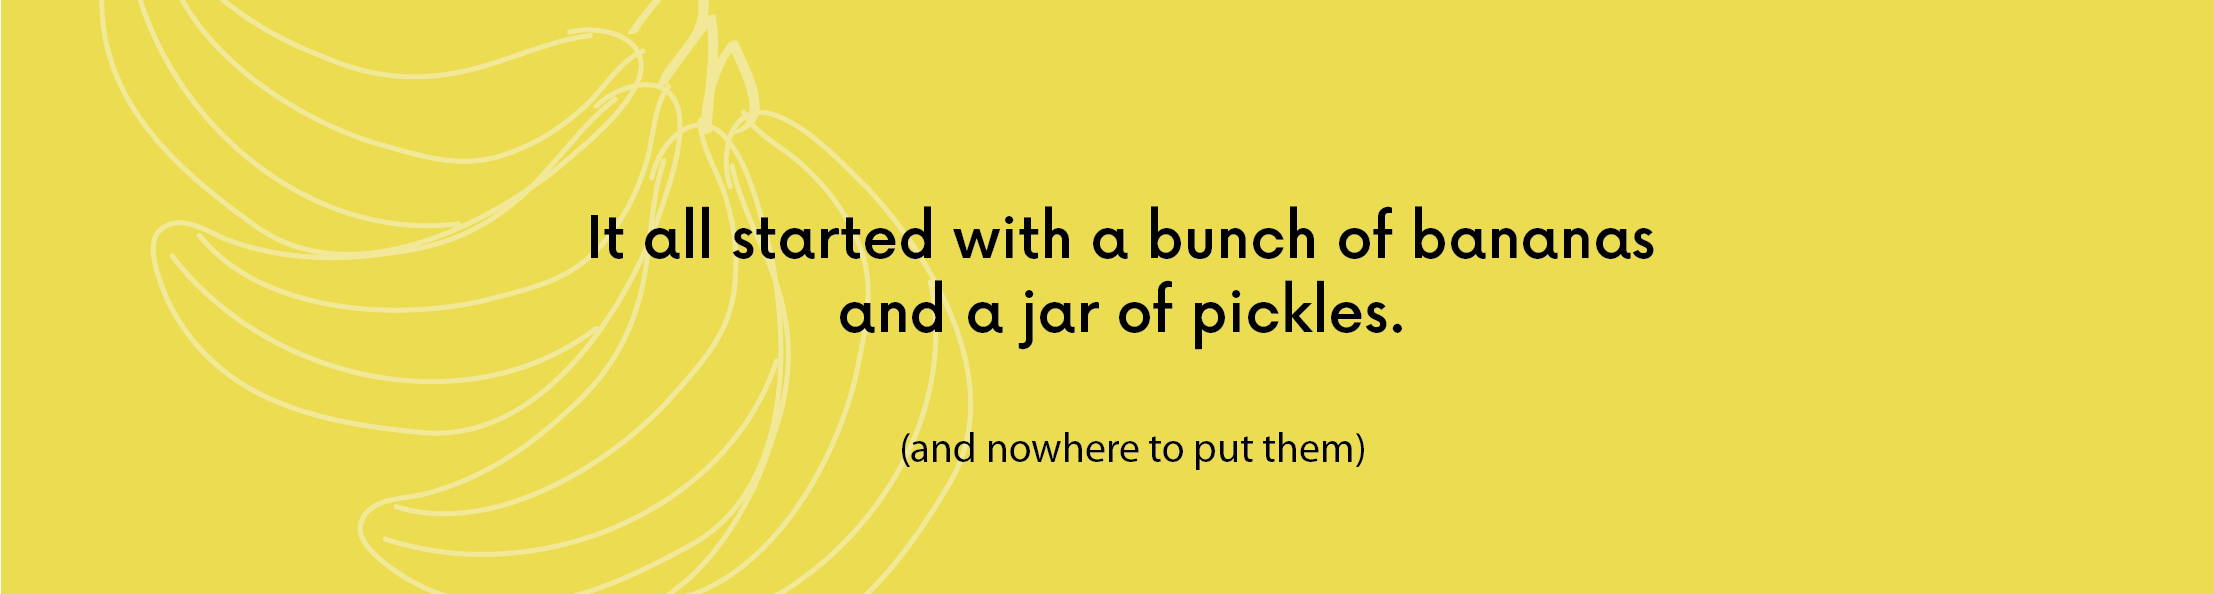 It all started with a bunch of bananas and a jar of pickles and nowhere to put them